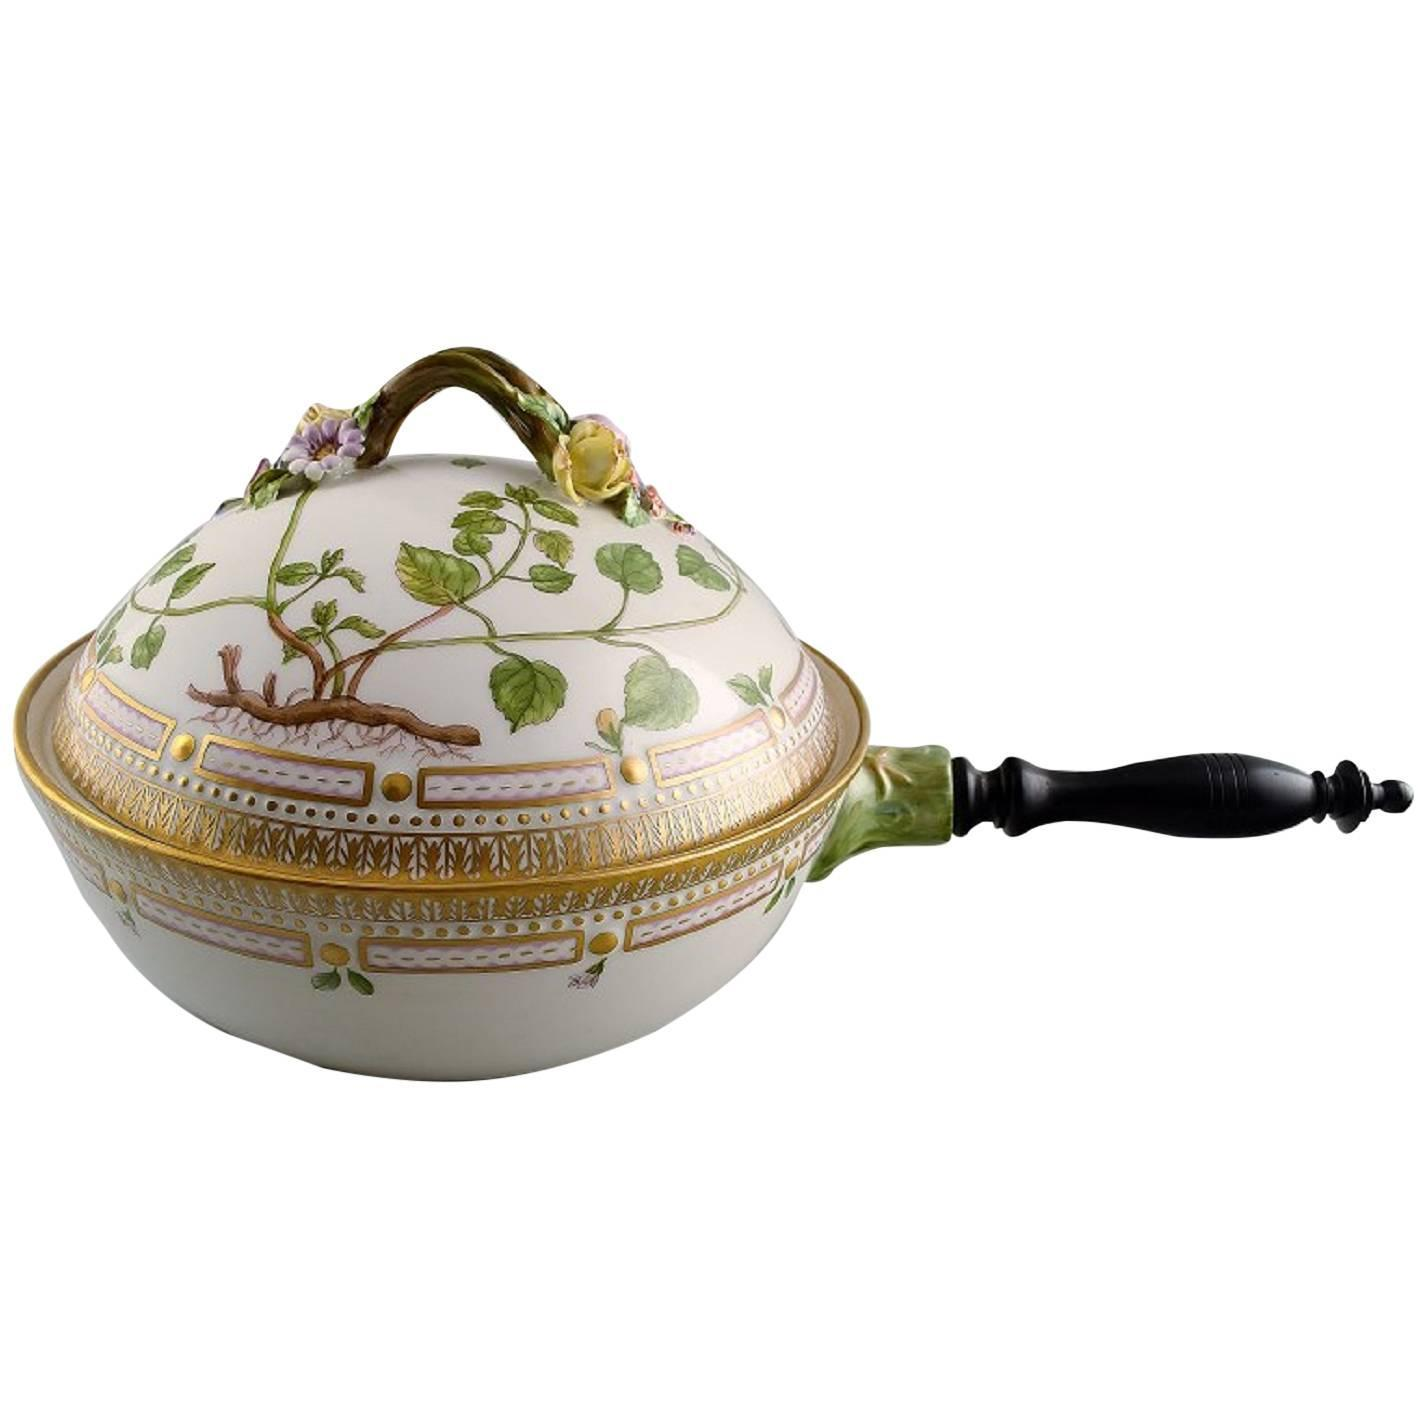 l copenhagen dating porcelain Royal copenhagen flora danica production dating instructions at replacements, ltd, with links to flora danica production dating instructions online pattern registration form, images of more.